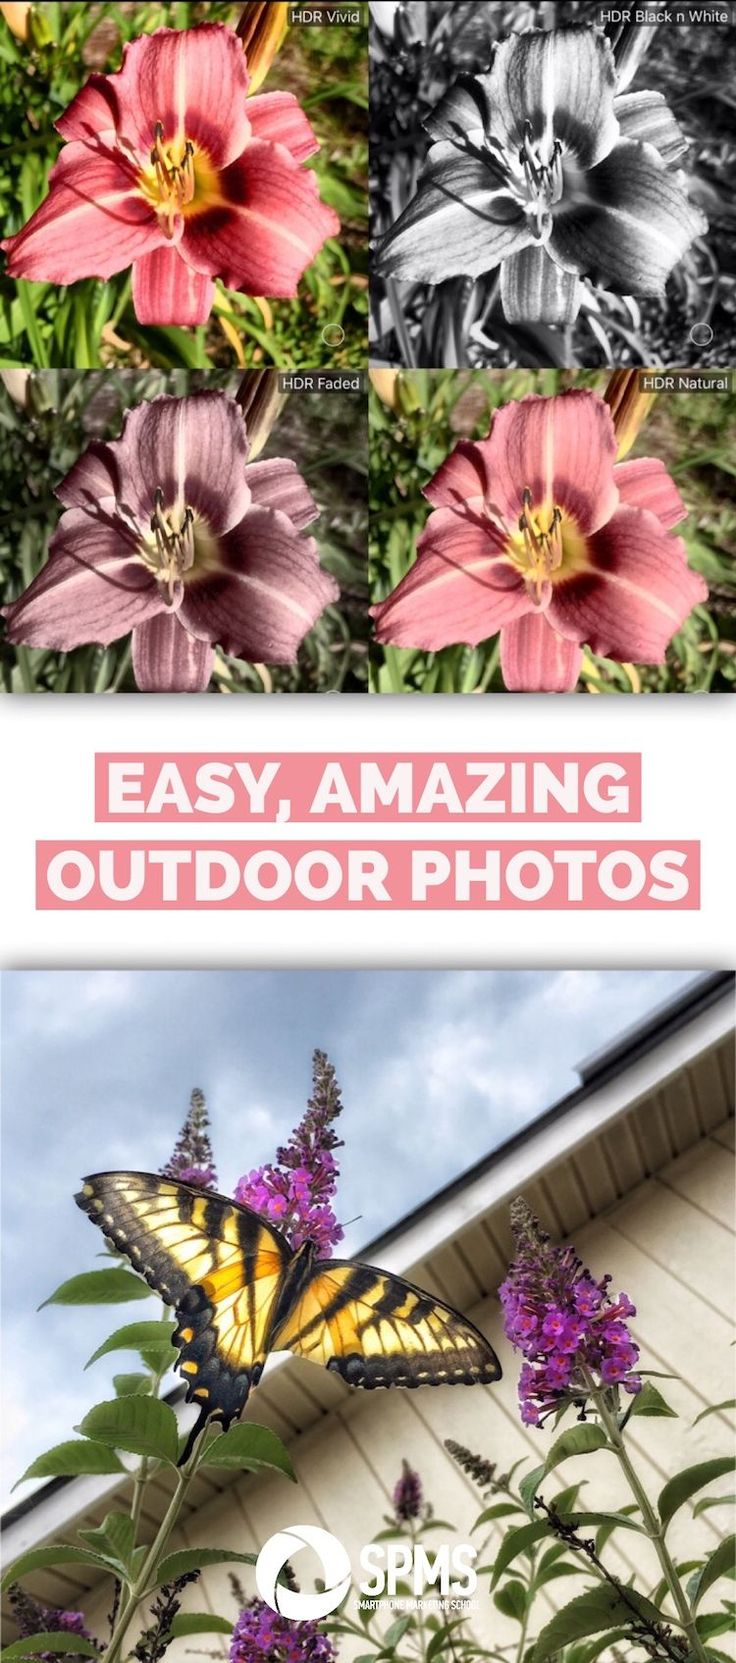 Learn to use the HDR tool in the ProCamera for instantly amazing outdoor photos